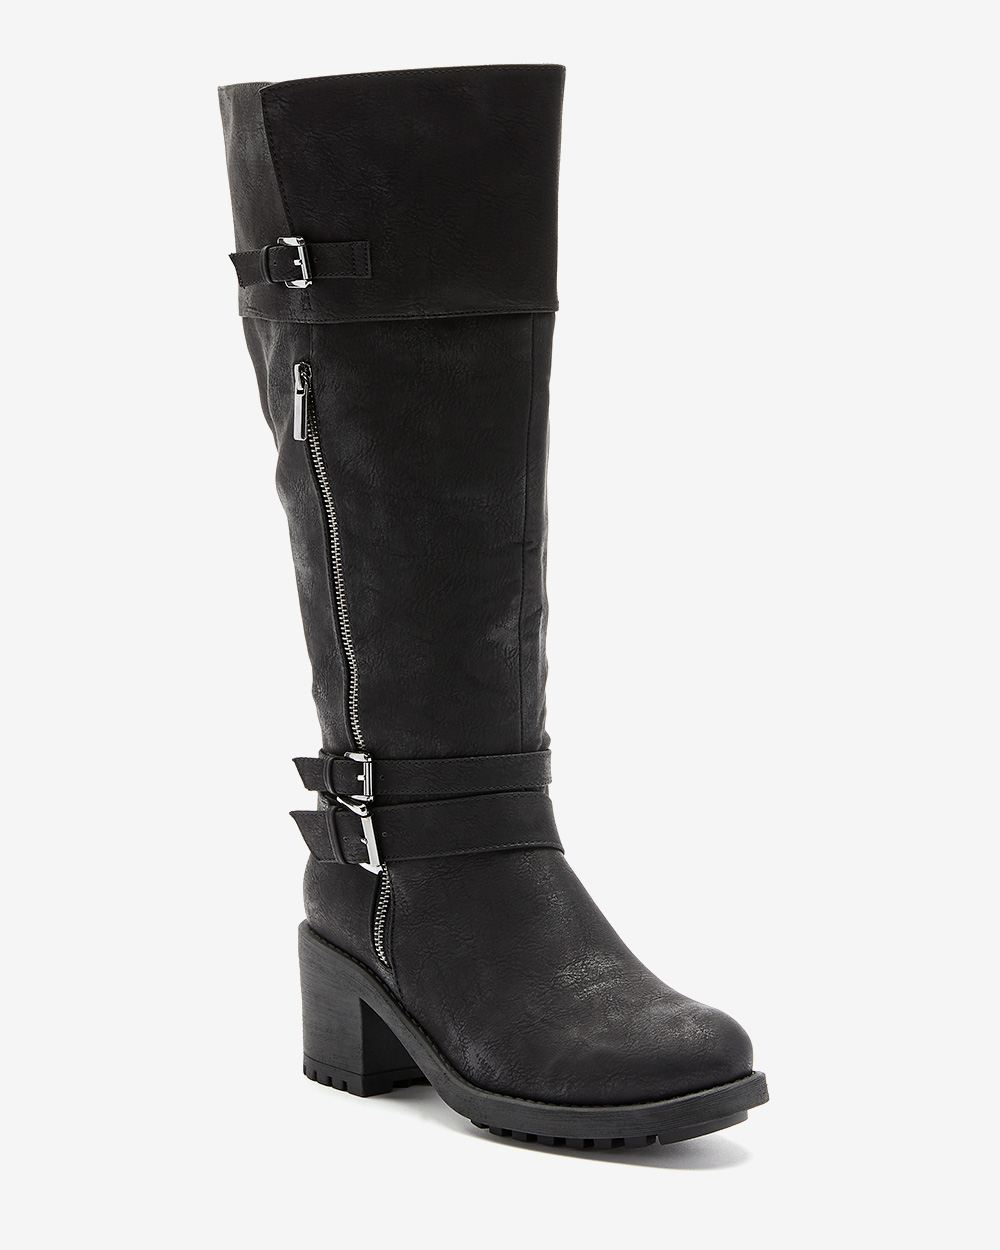 Over-the-Knee Boots with Strap Details - Addition Elle ($139 CAD)